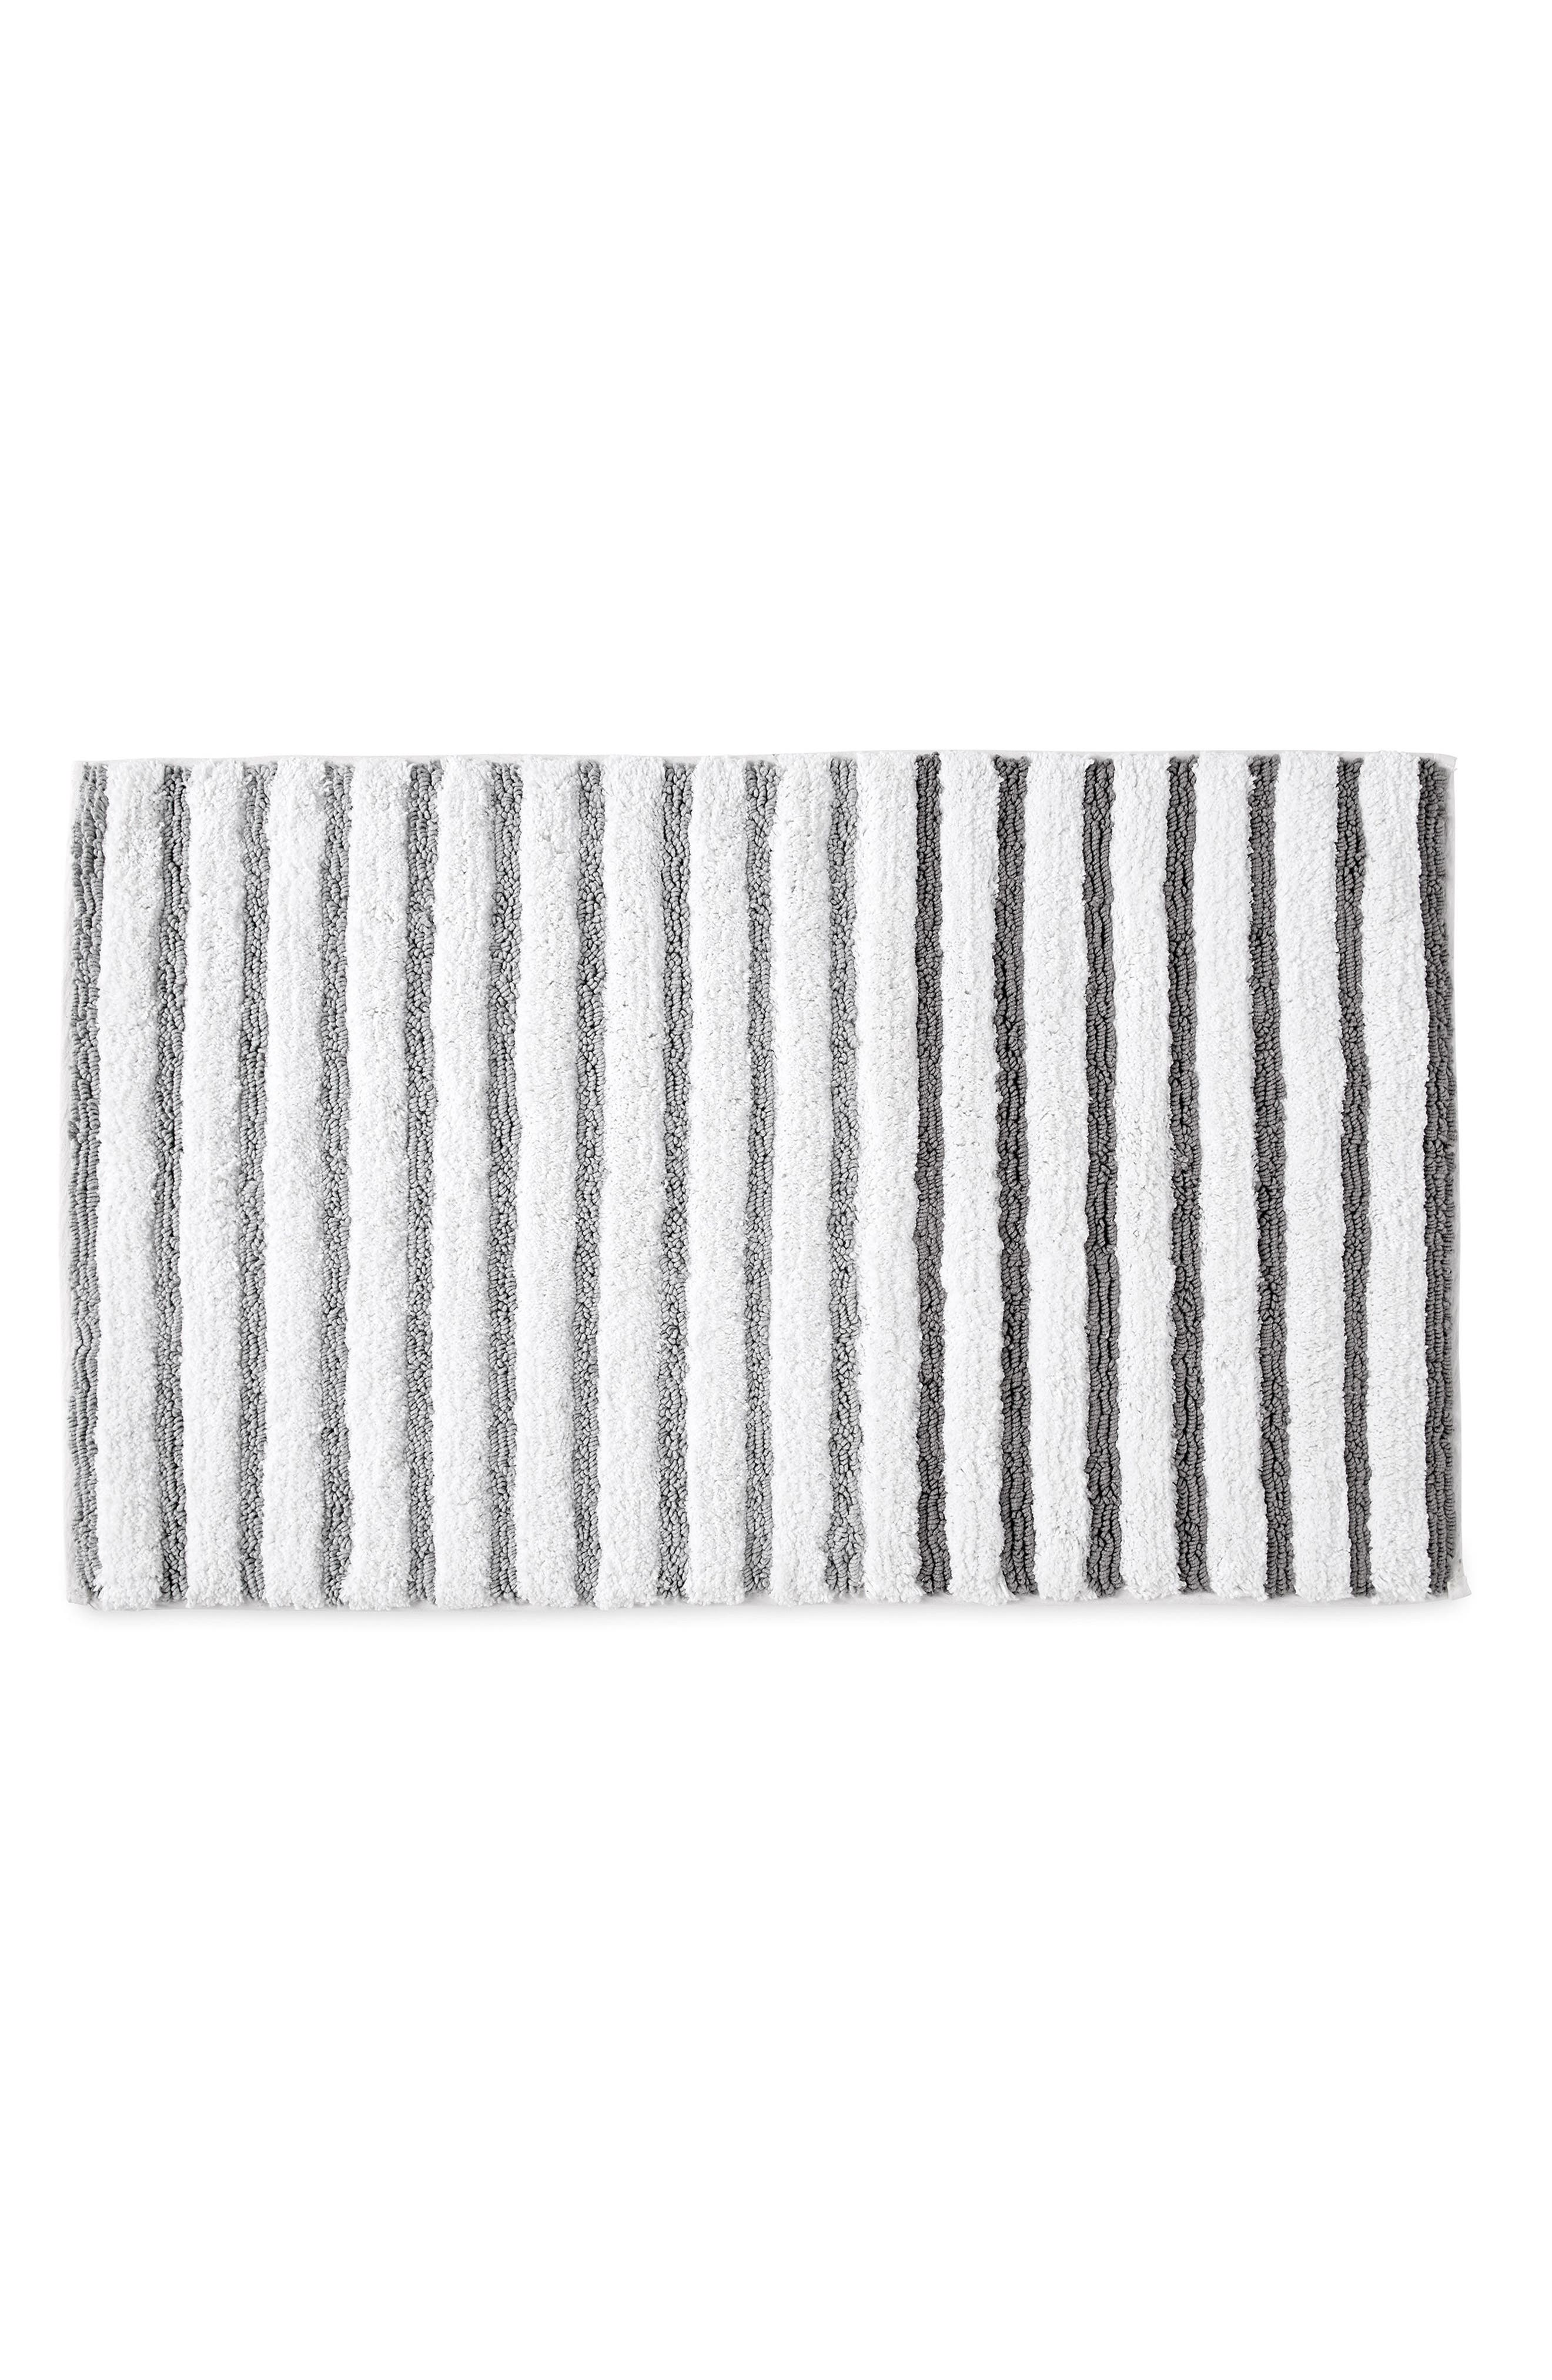 Picture of: Dkny Parson Stripe Bath Rug Nordstrom